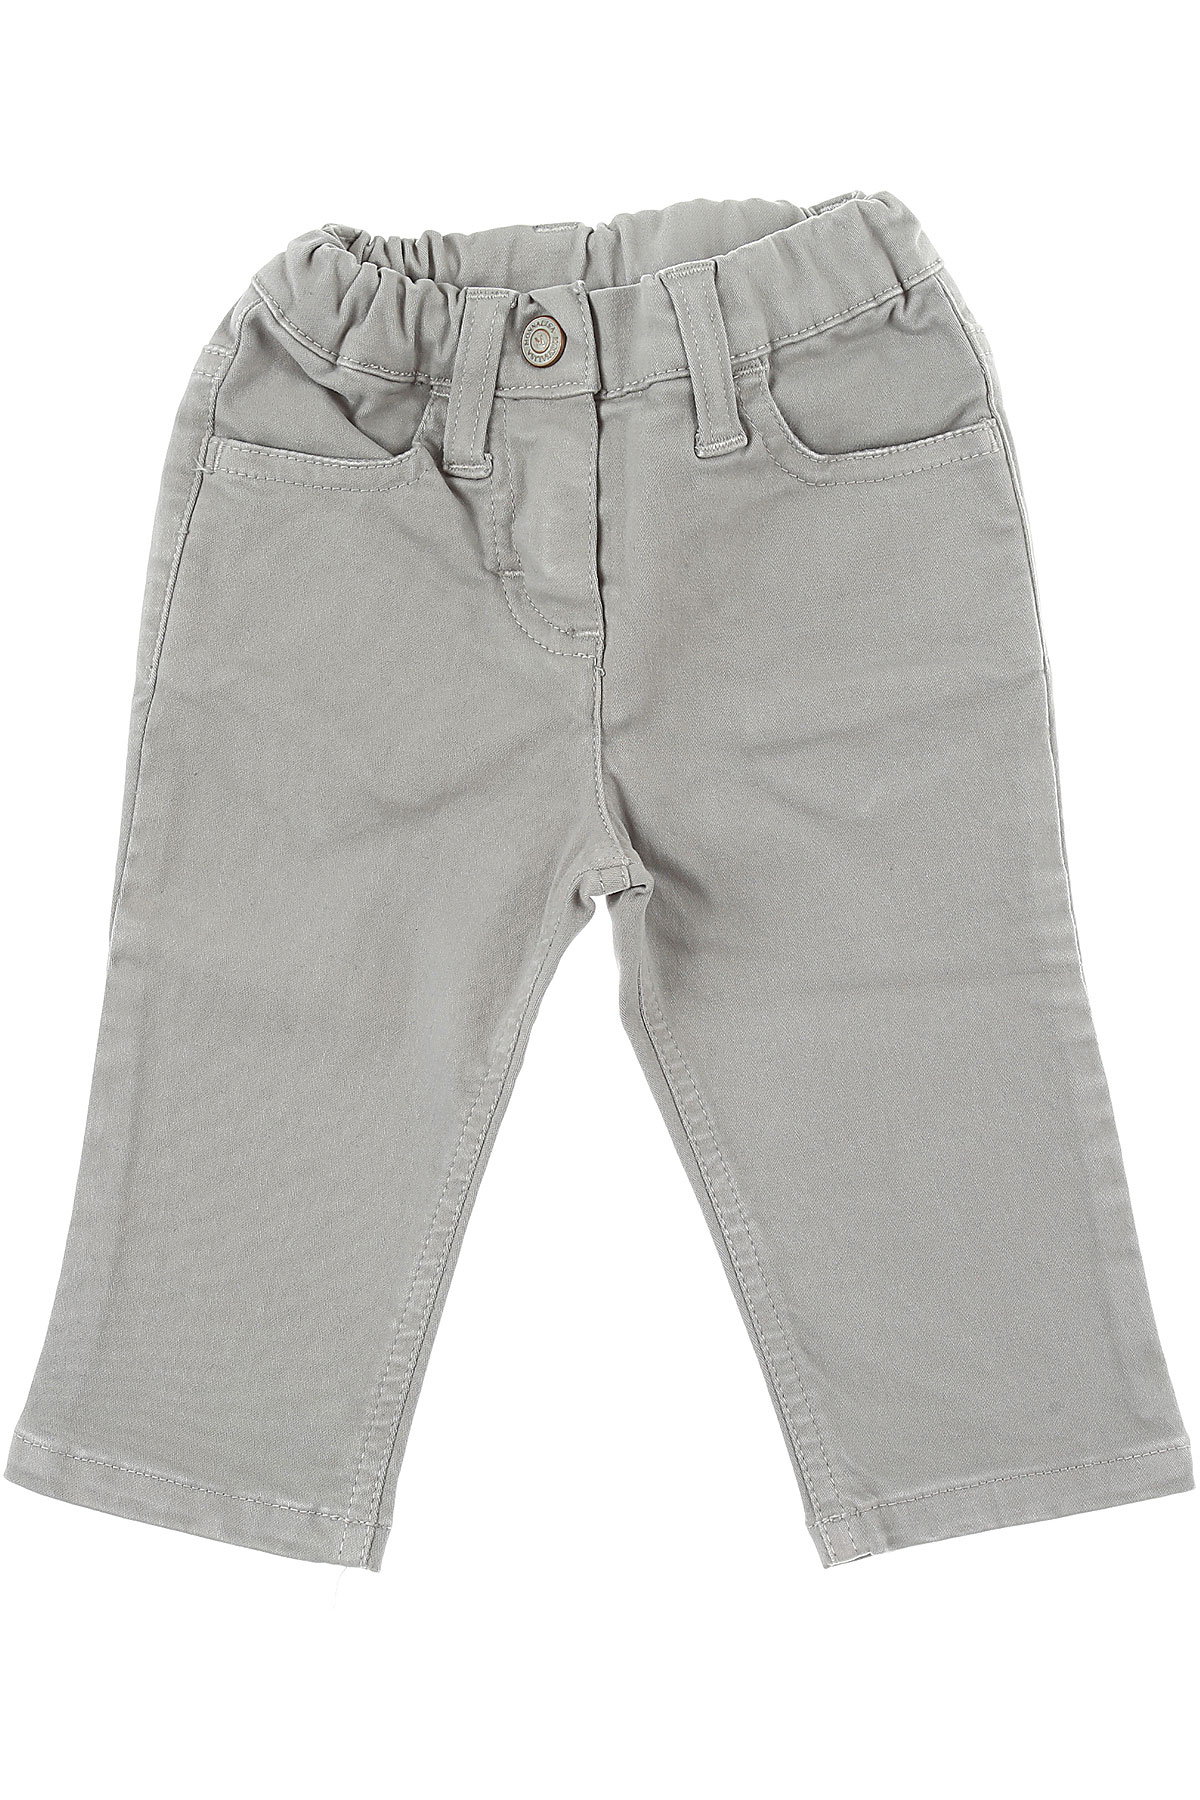 Monnalisa Baby Pants for Girls On Sale in Outlet, Grey, Cotton, 2019, 12M 18M 2Y 6M 9M